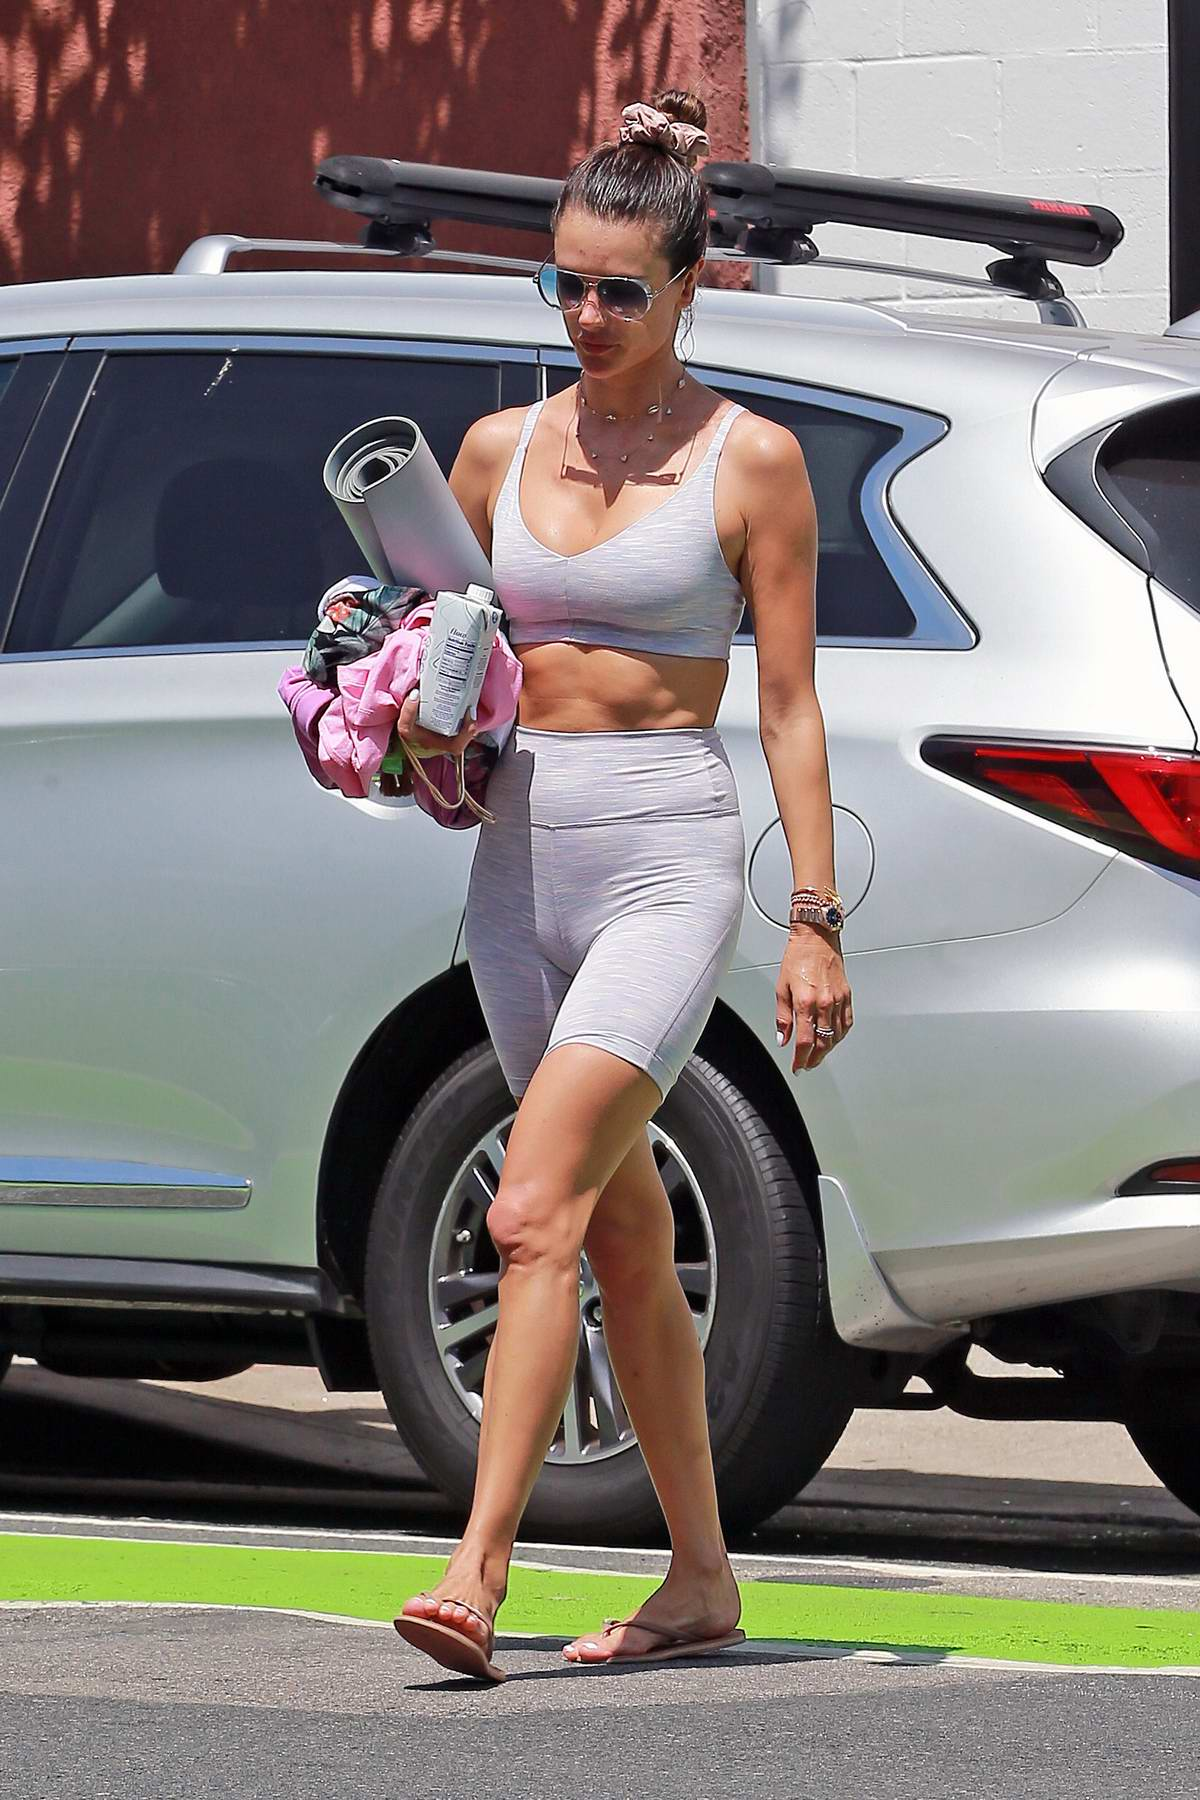 Alessandra Ambrosio displays her incredible body in tight gym outfit as she leaves after a workout in Los Angeles